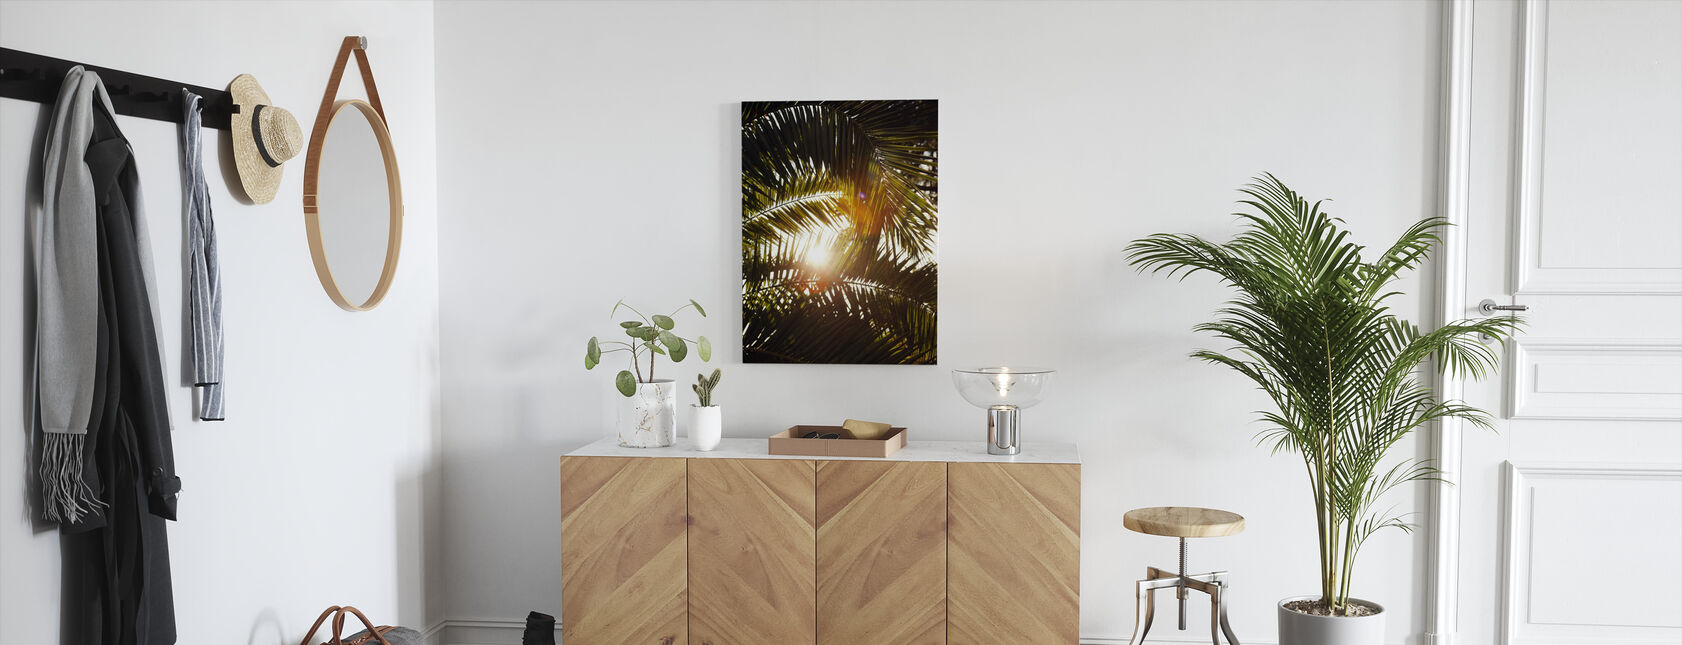 Sunbeam through Palm Leaves - Canvas print - Hallway